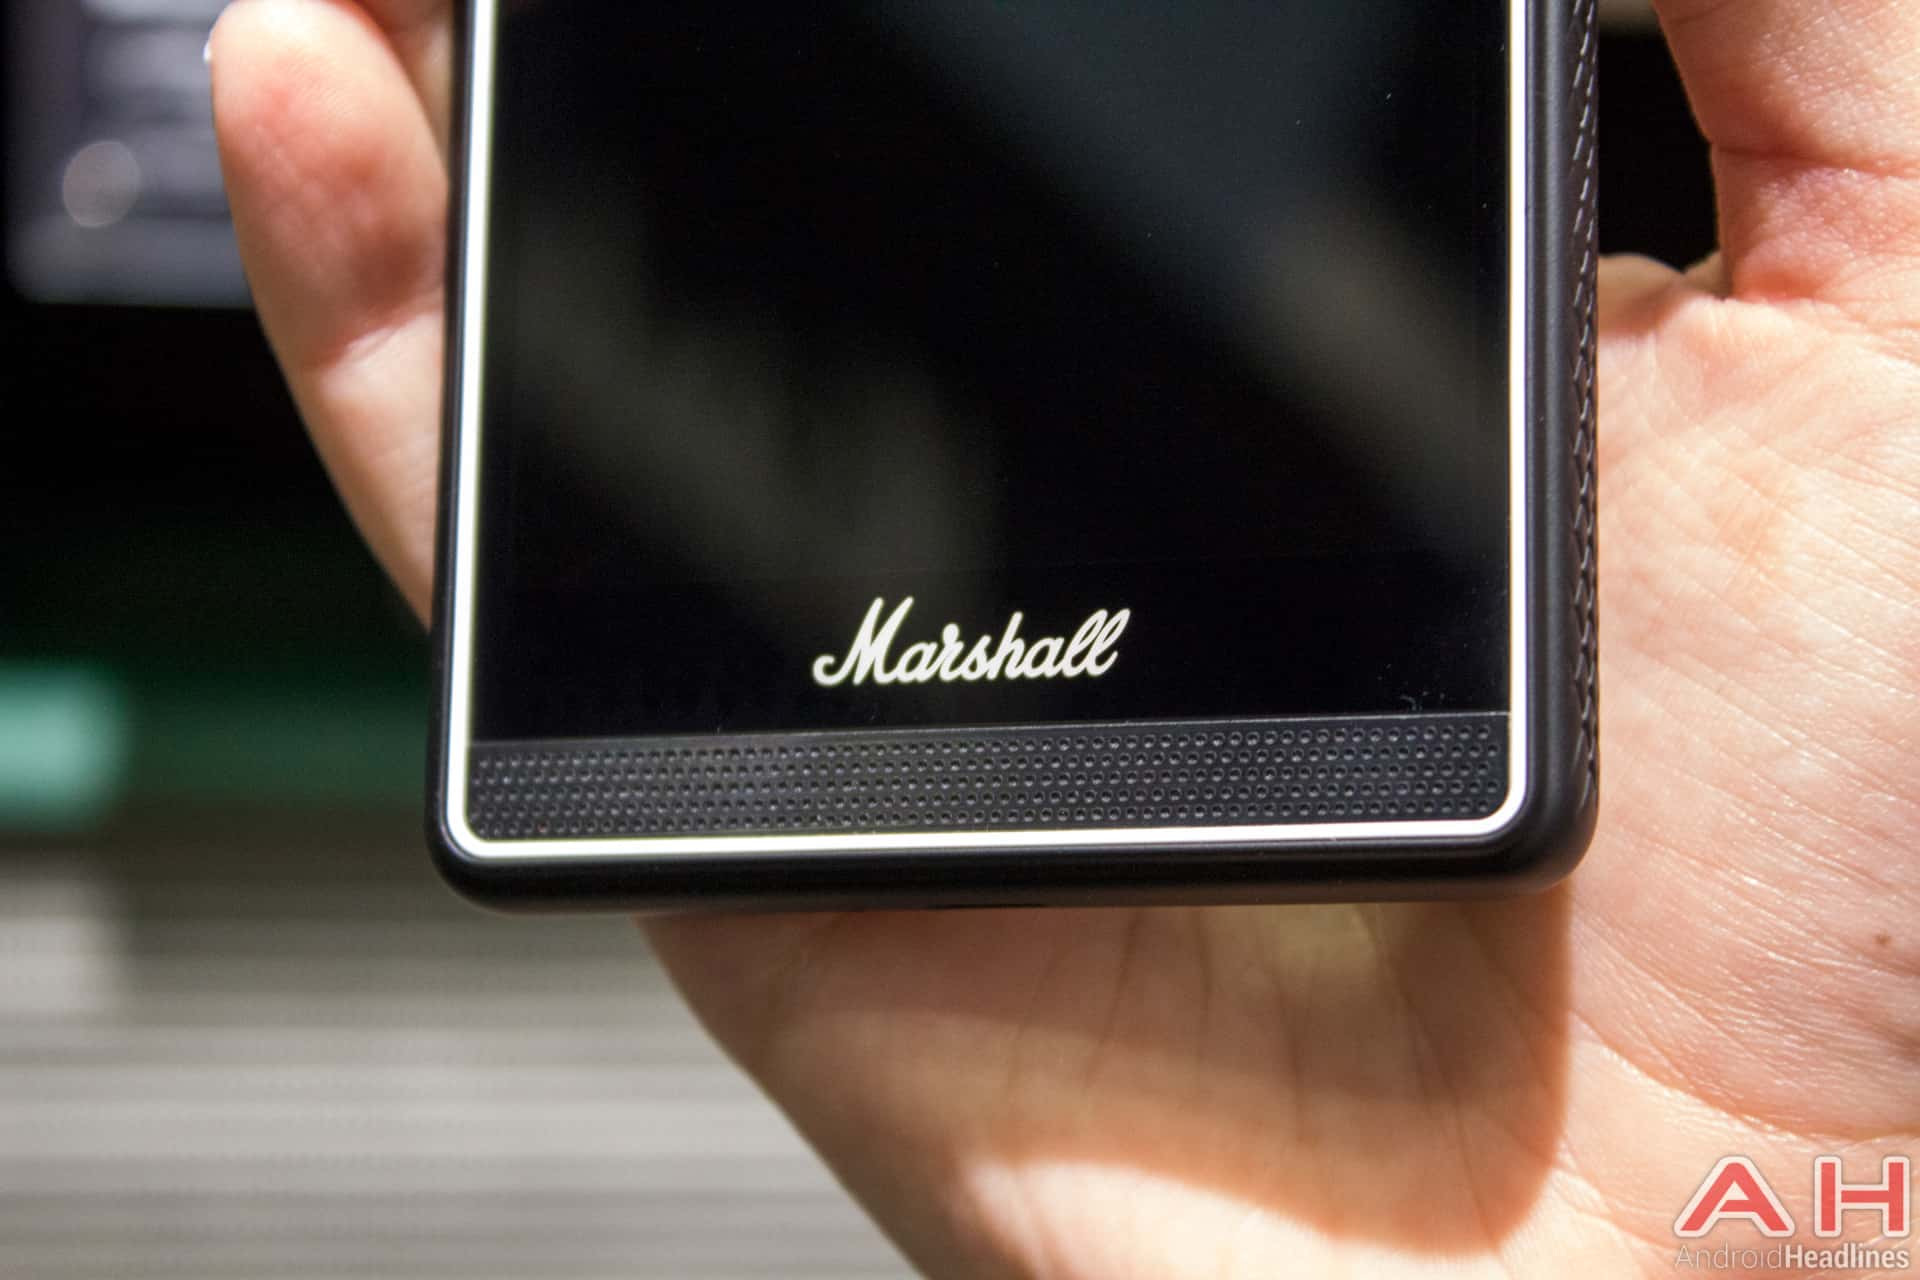 Marshall London IFA AH 3